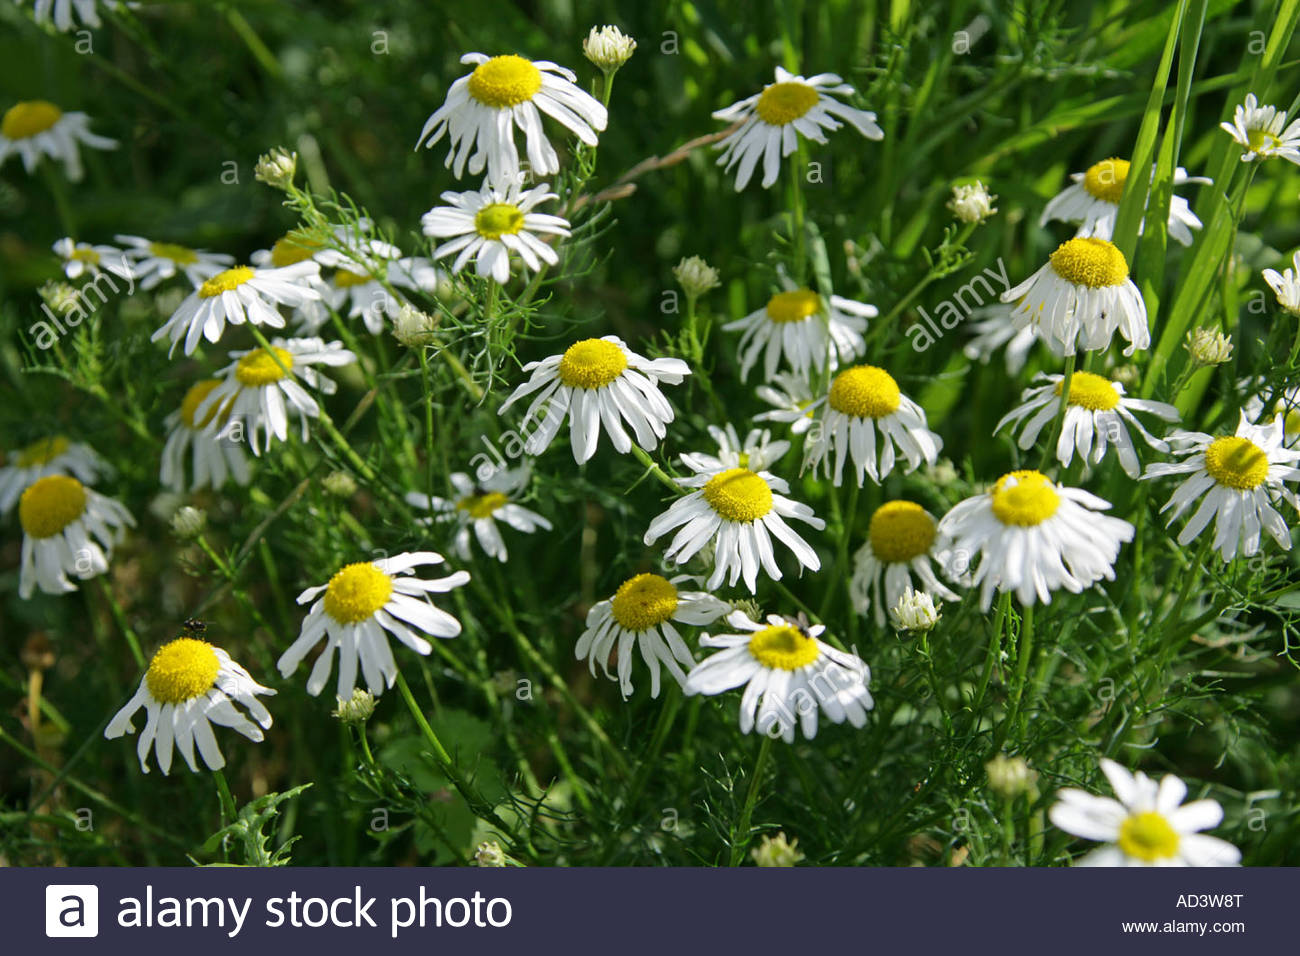 Scentless Mayweed Matricaria Perforata Or Tripleurospermum.